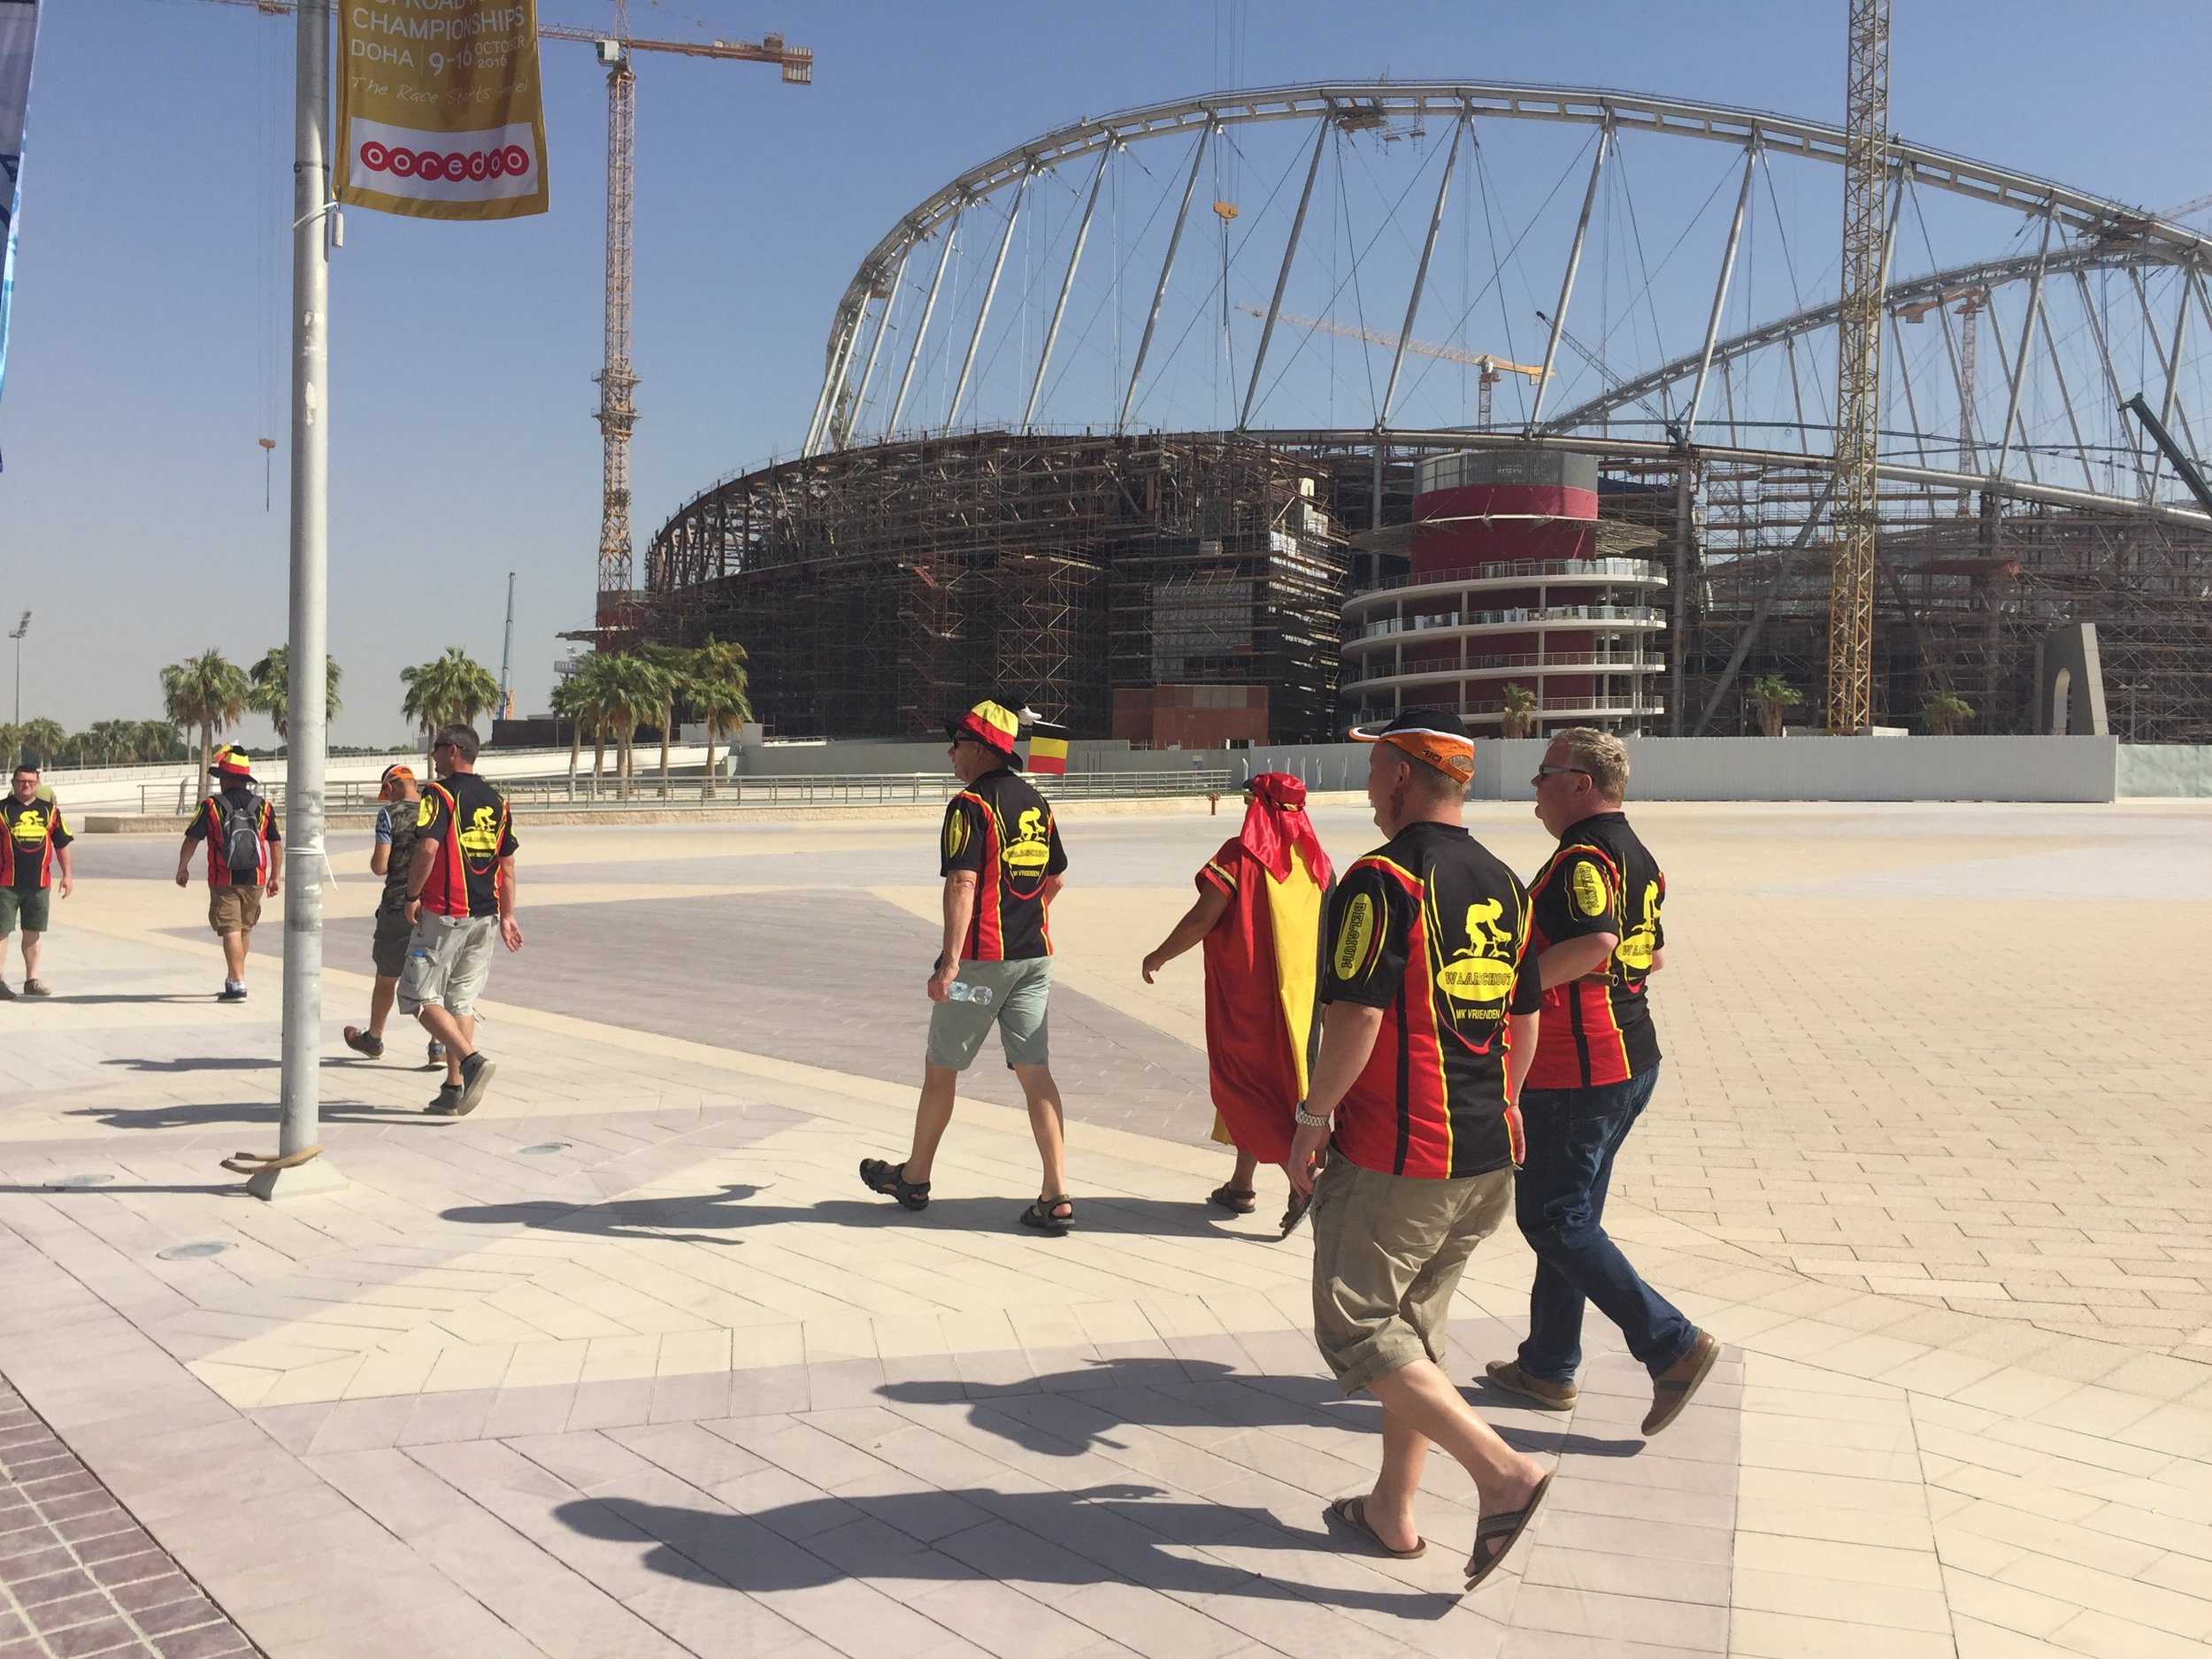 Belgian Fans walking to the Start Line.Behind one of stadiums for the FIFA WORLD CUP 2022